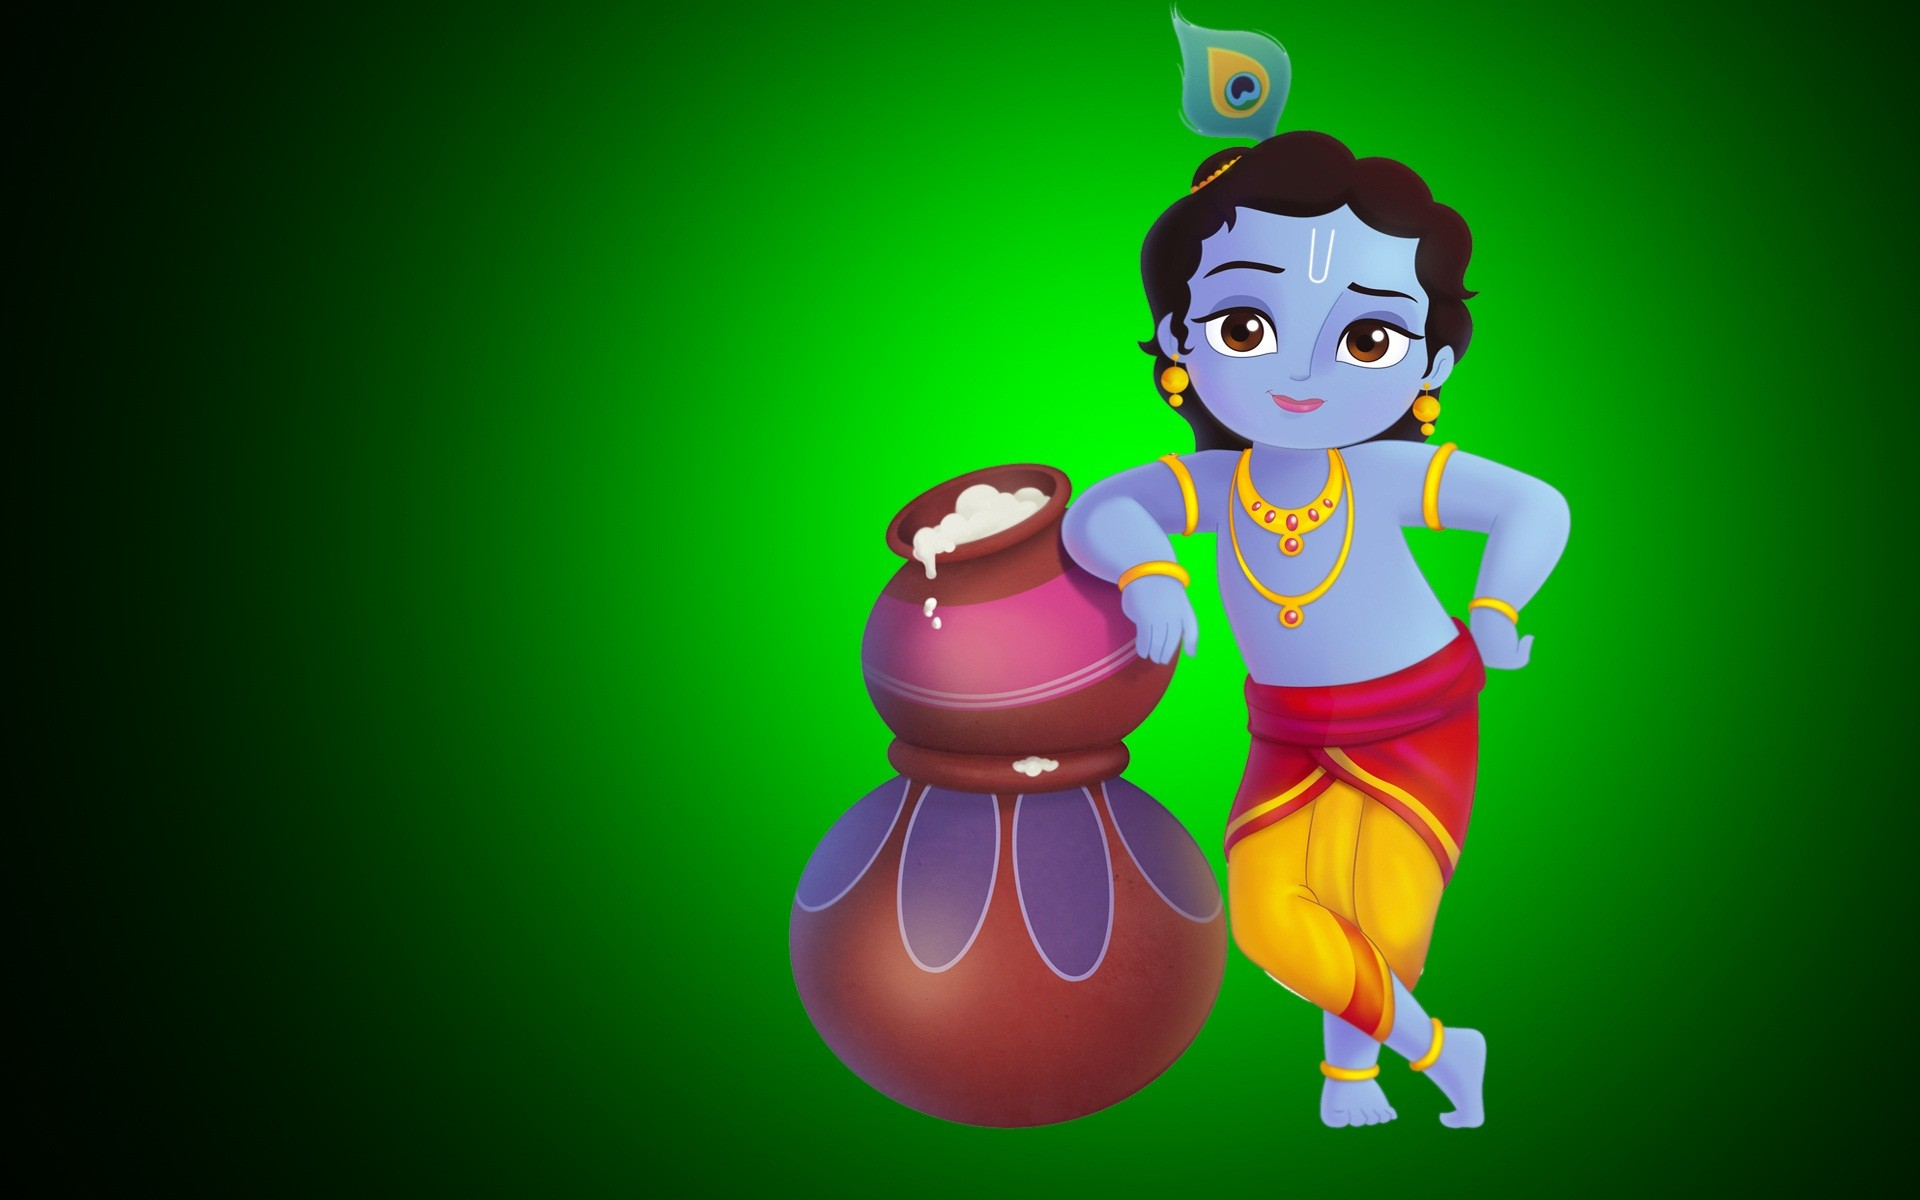 Happy krishna janmashtami hd cover picture for facebook - Cute cartoon hd images ...